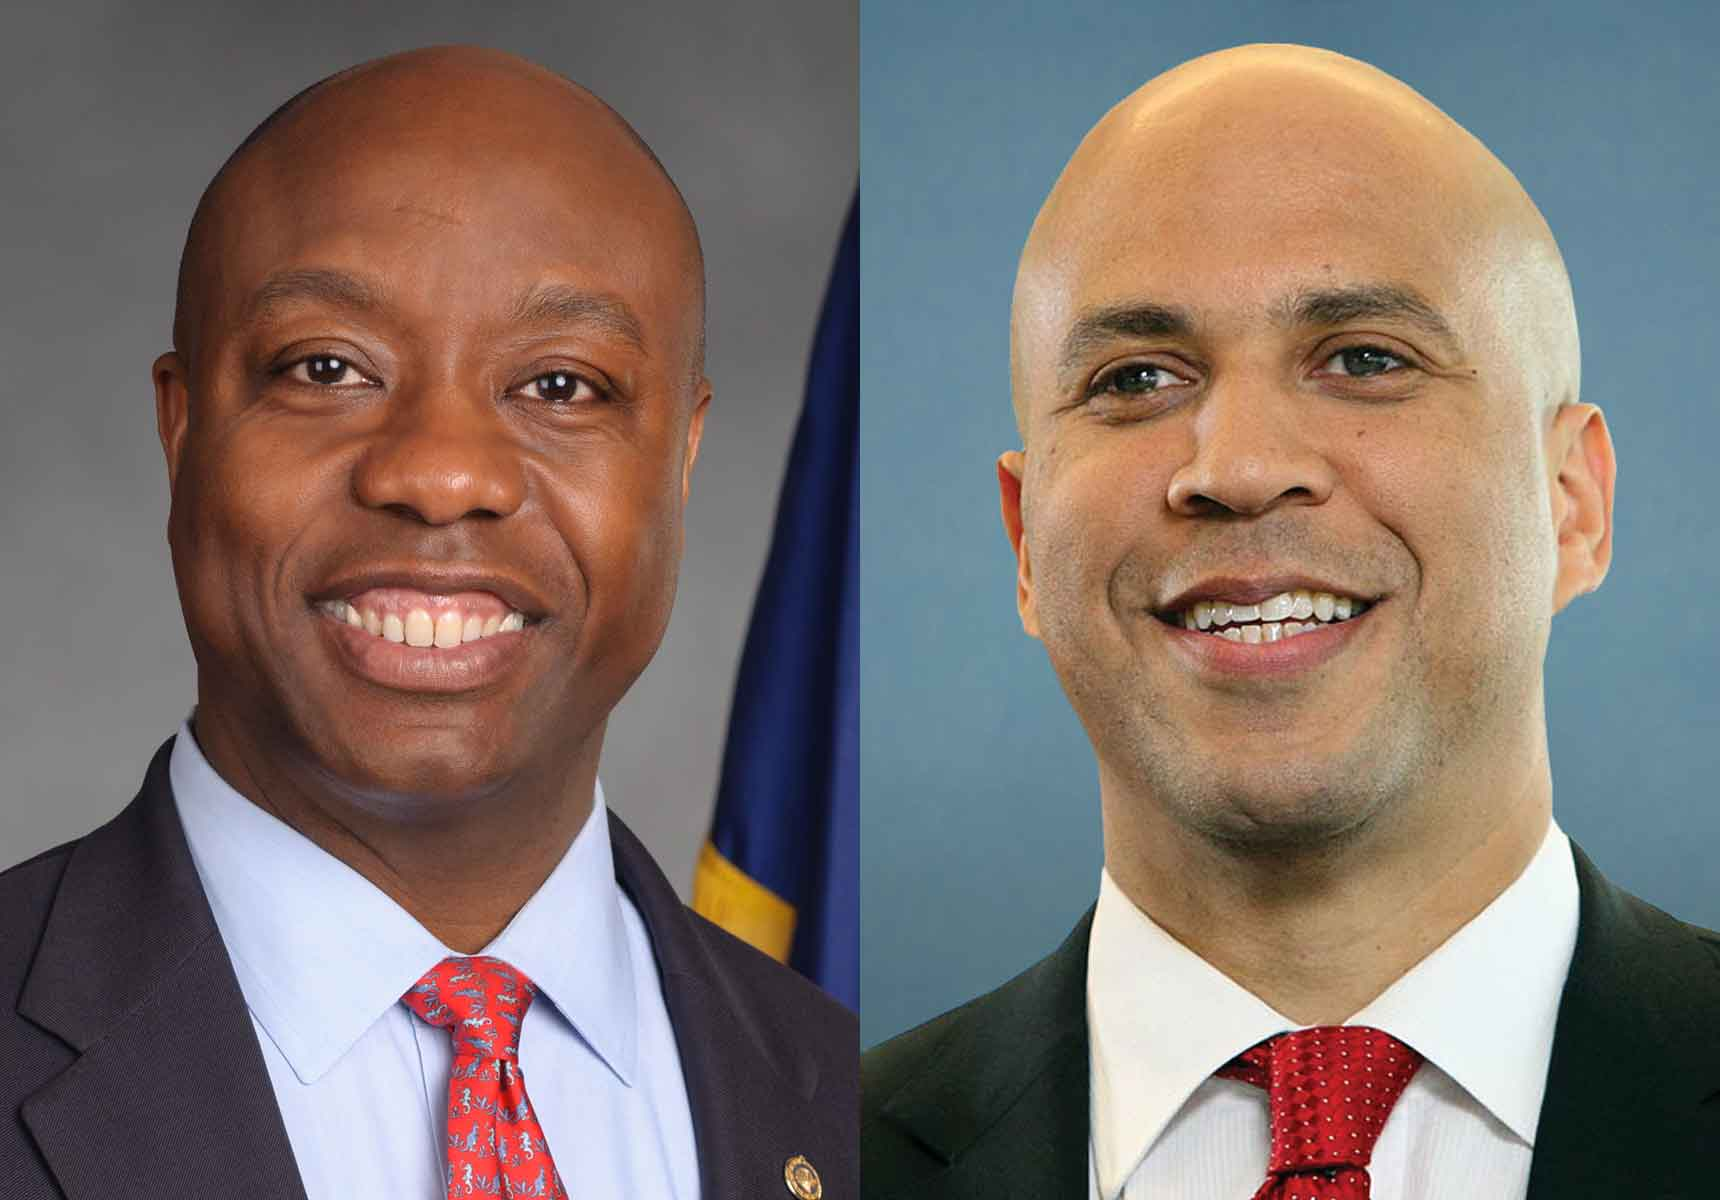 Senators Tim Scott (R-SC) and Cory Booker (D-NJ)